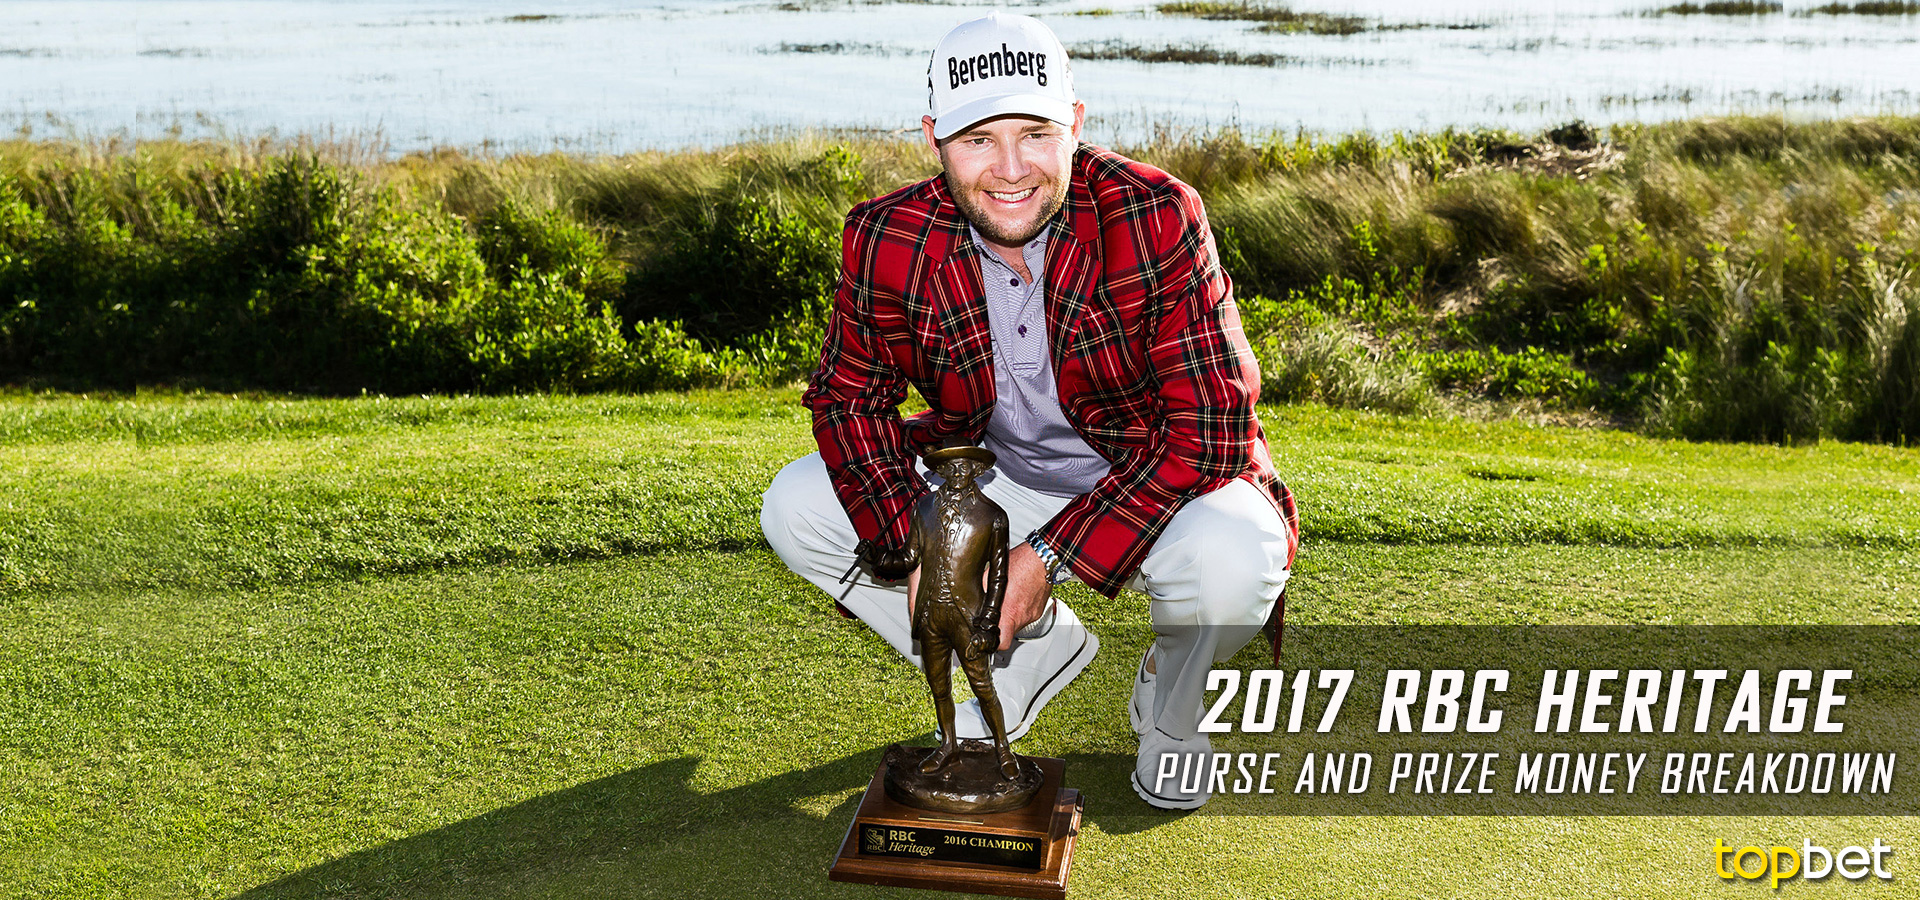 2017 Rbc Heritage Purse And Prize Money Breakdown